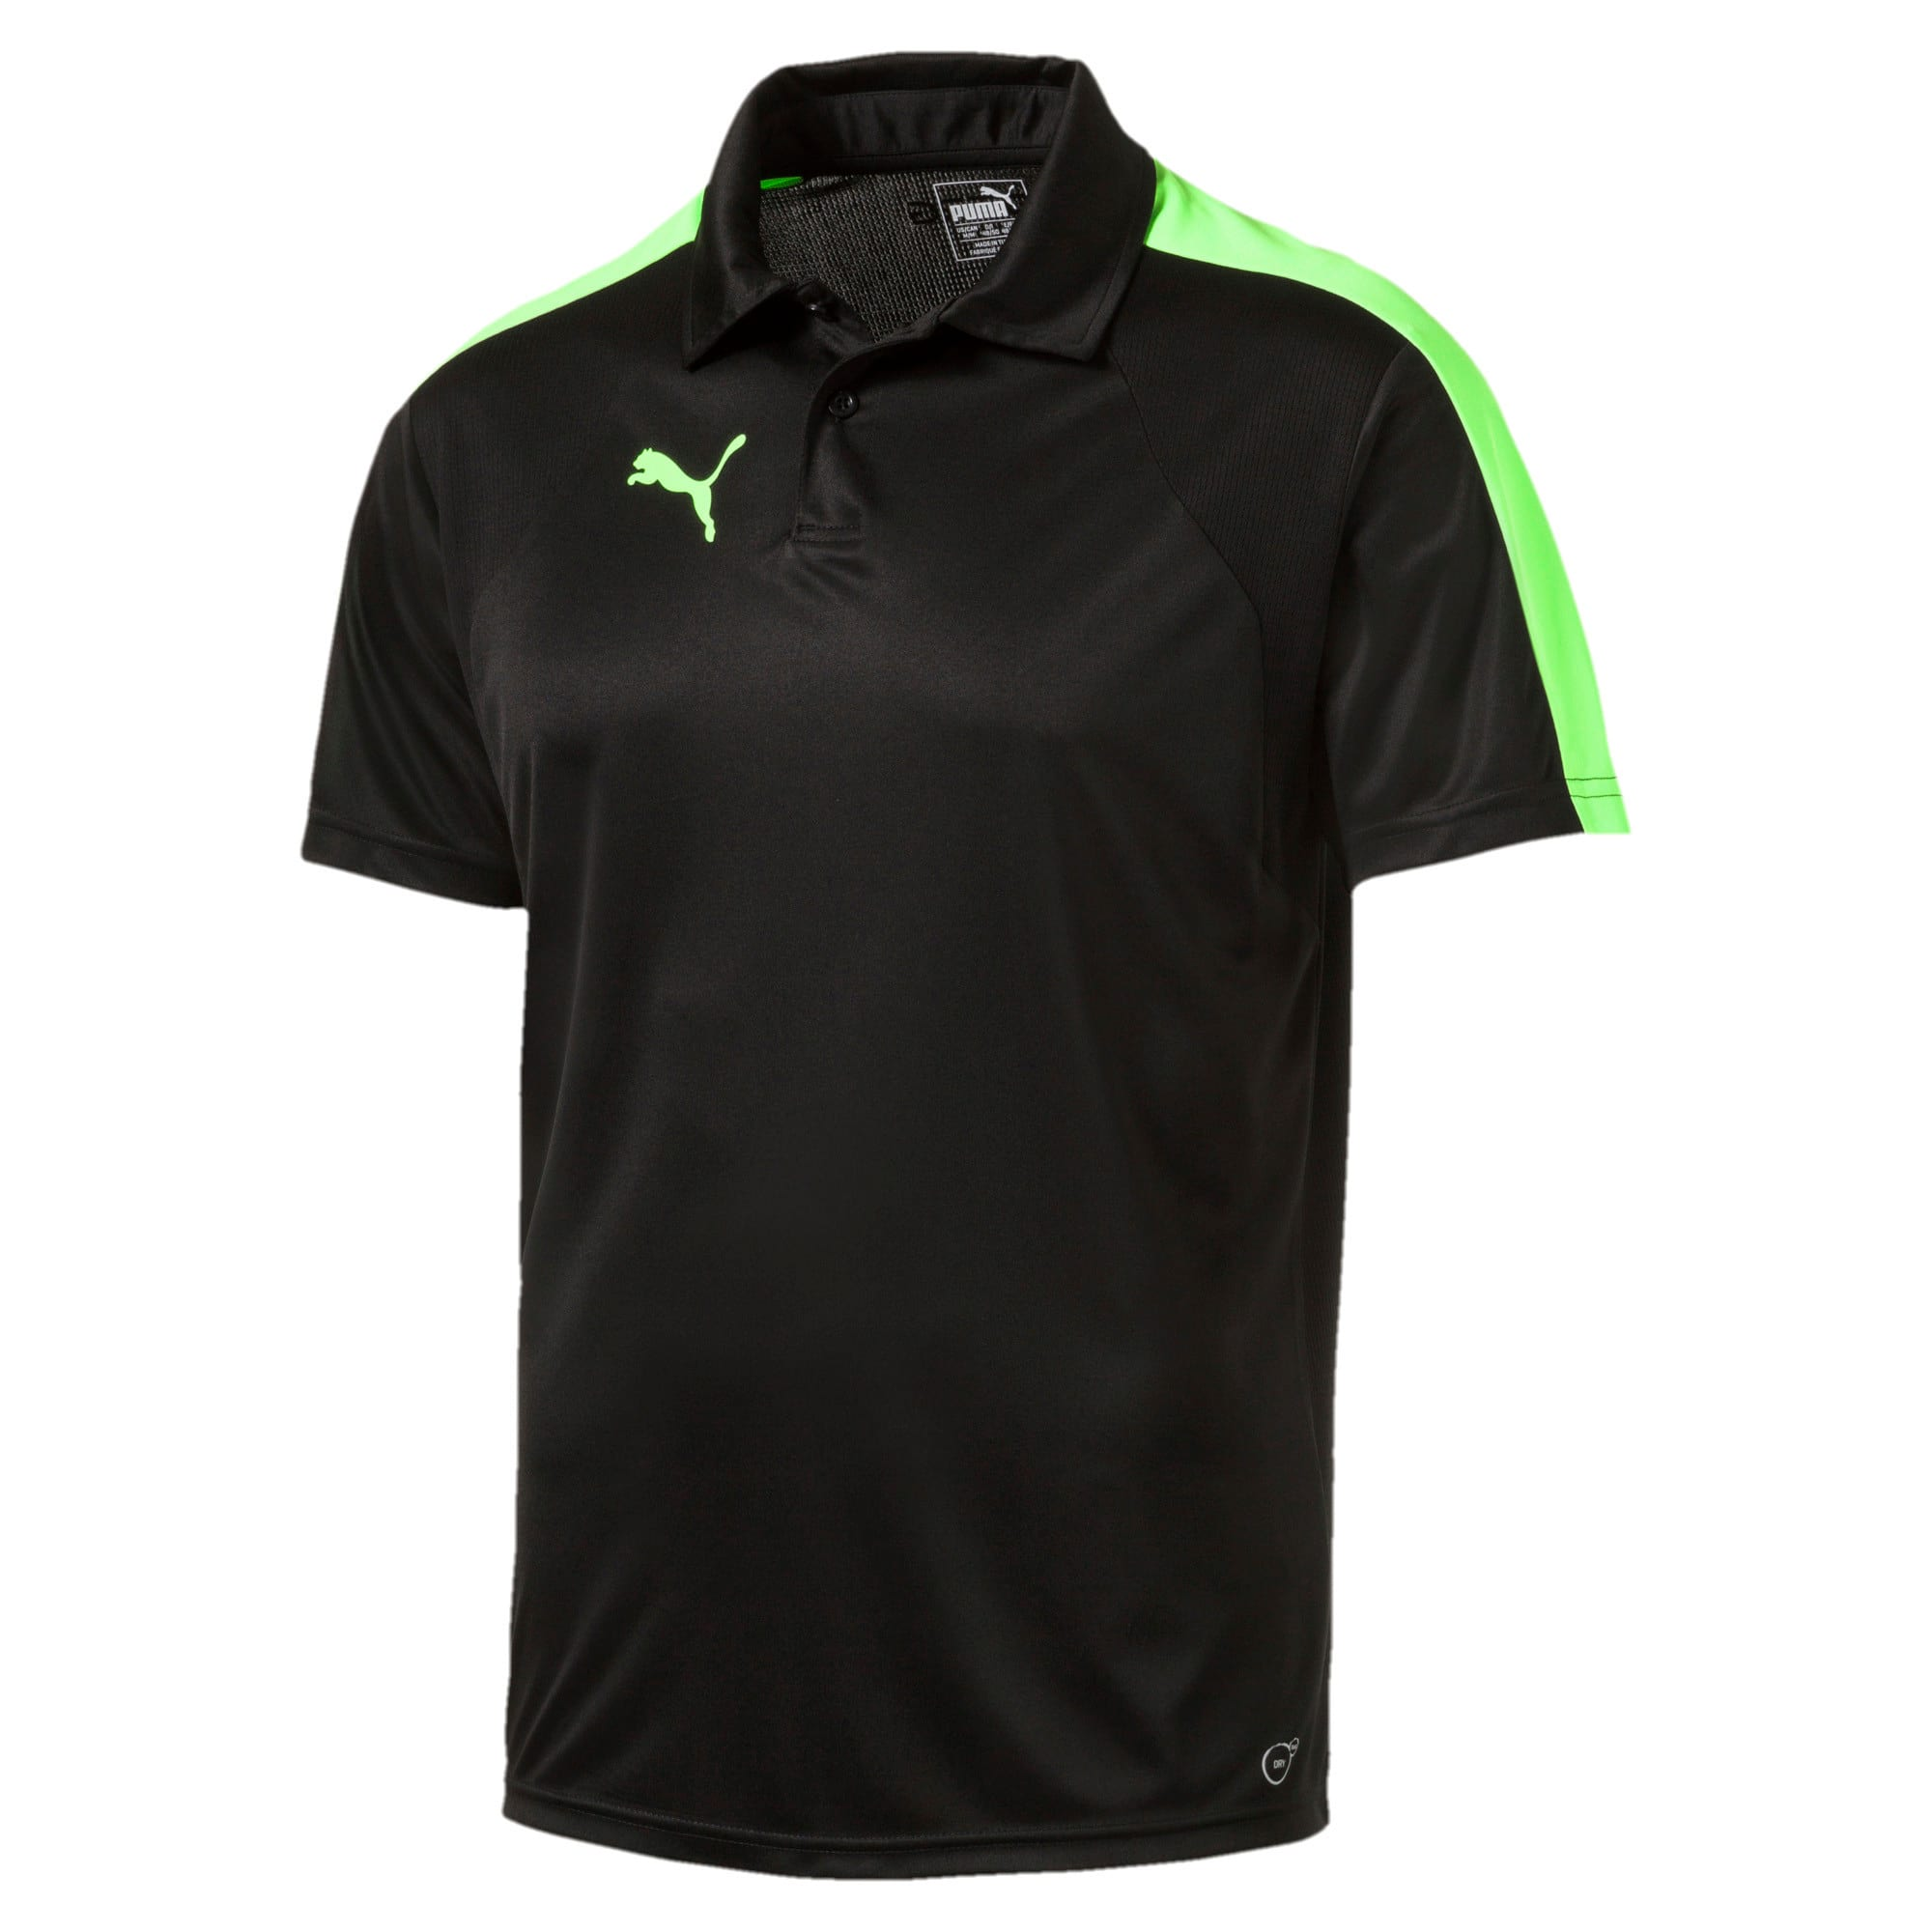 Thumbnail 4 of IT evoTRG Polo, Puma Black-Green Gecko, medium-IND